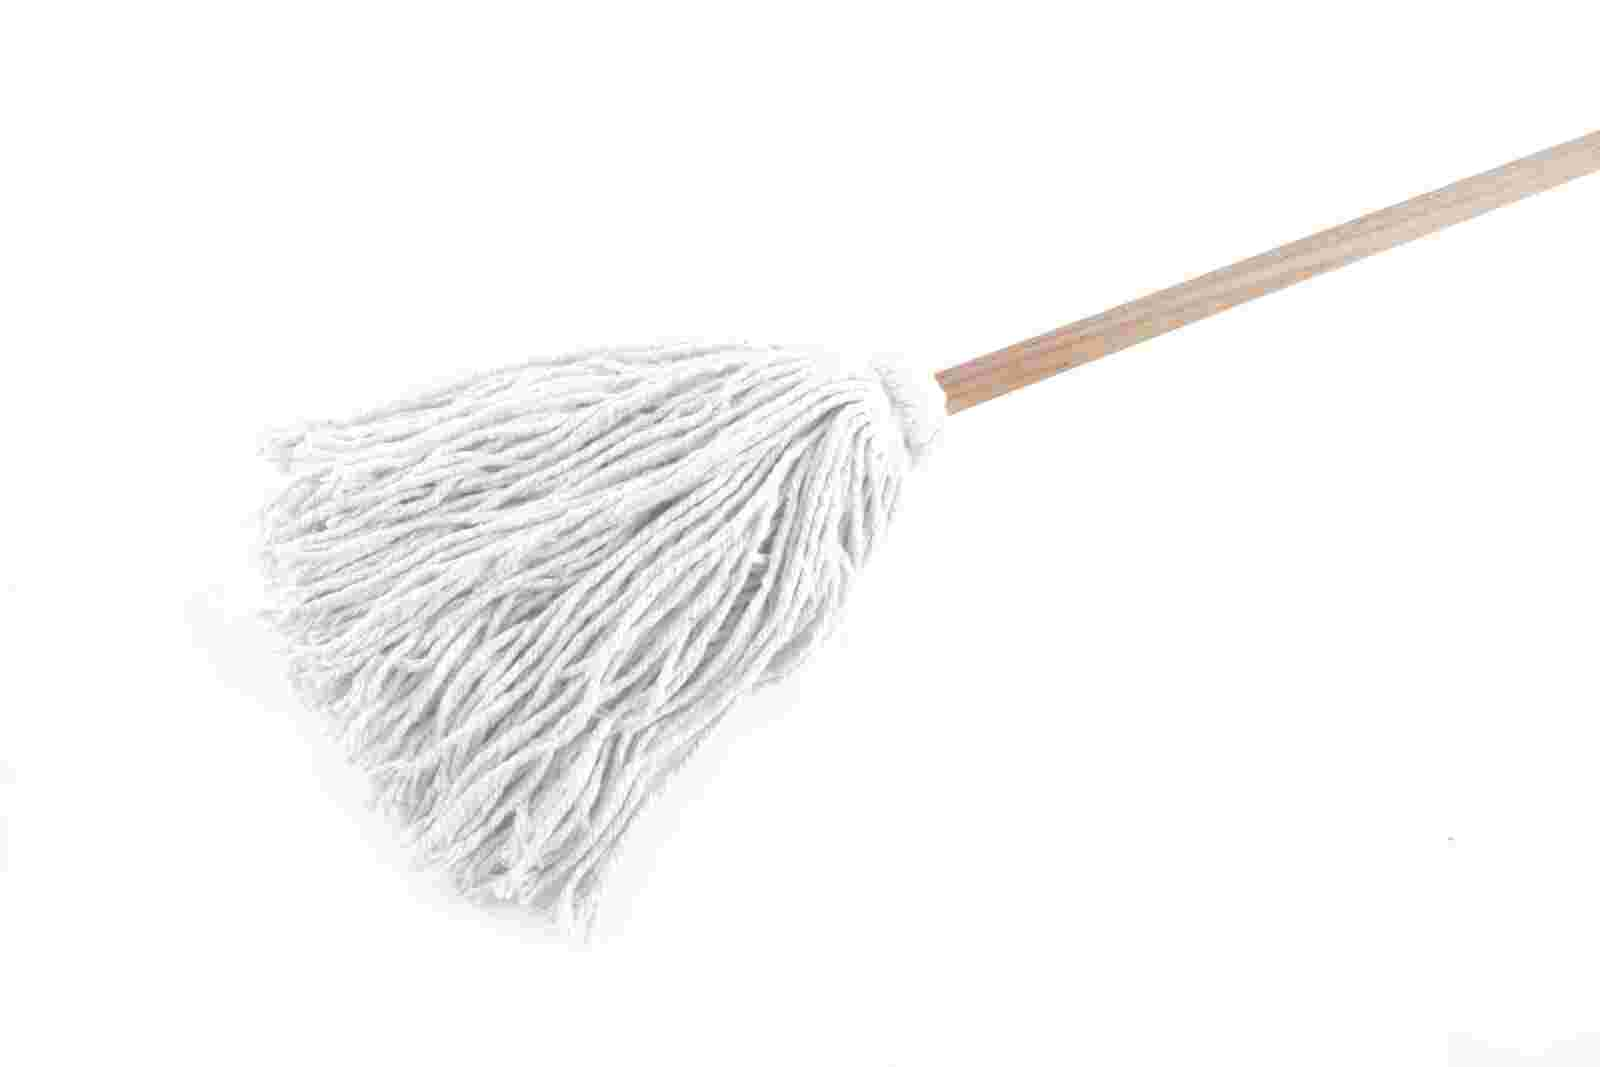 Connecticut man is facing charges after police said he grabbed a mop ...